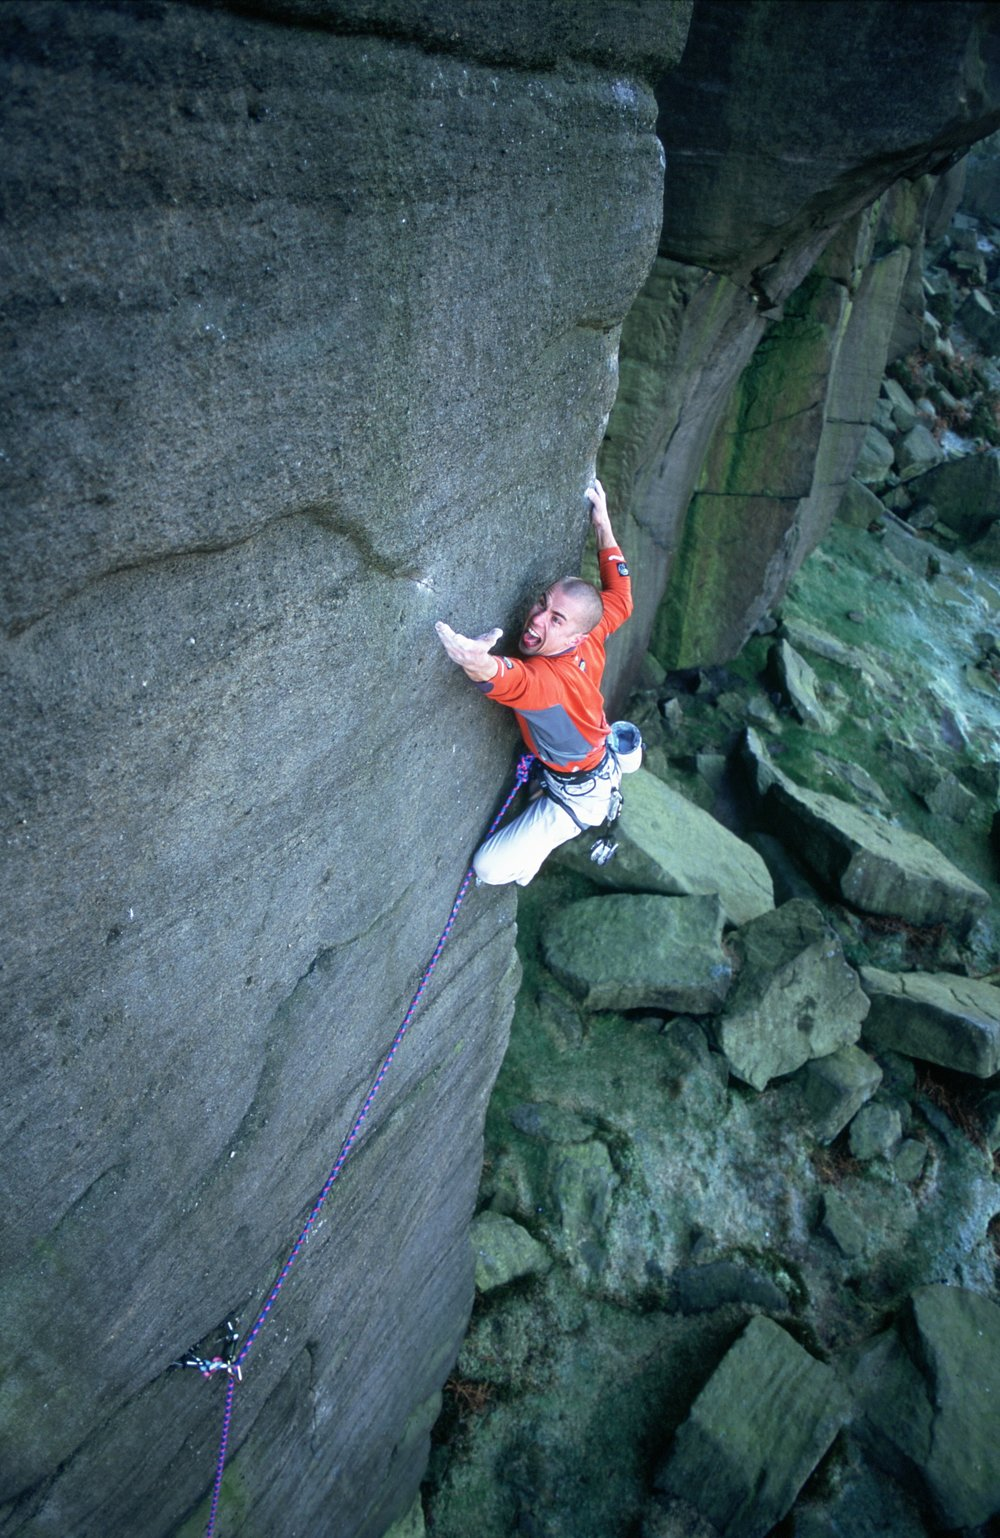 Second ascent of Equilibrium E10 7a in 2001. Britain's hardest trad route at the time. Photo: Mike Robertson